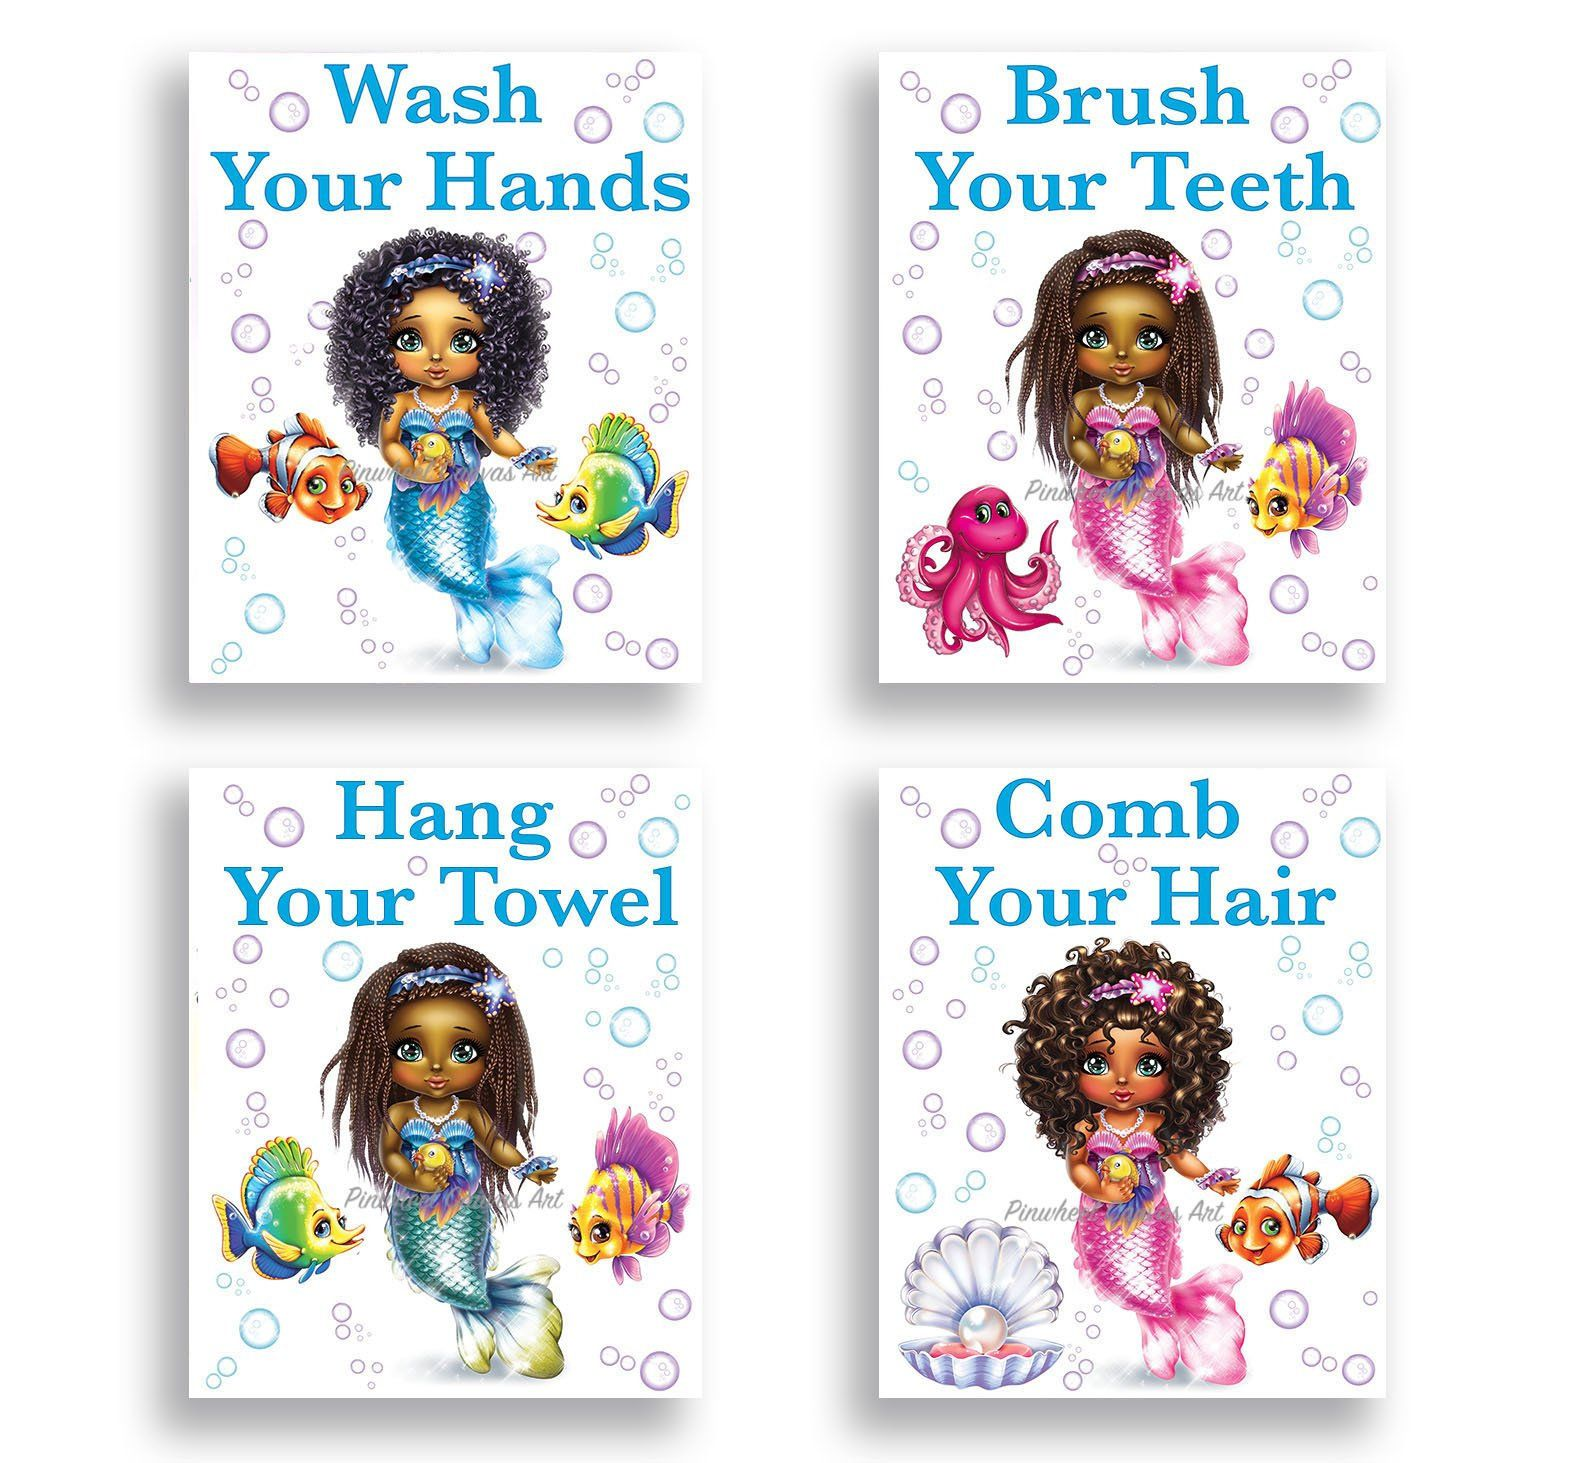 Mermaid Bathroom Wall Decor, African American Girl Wall Art, Girl Bathroom Sign Wash Brush, Mermaid Under the Sea Bathroom Decor Set of 4 #mermaidbathroomdecor